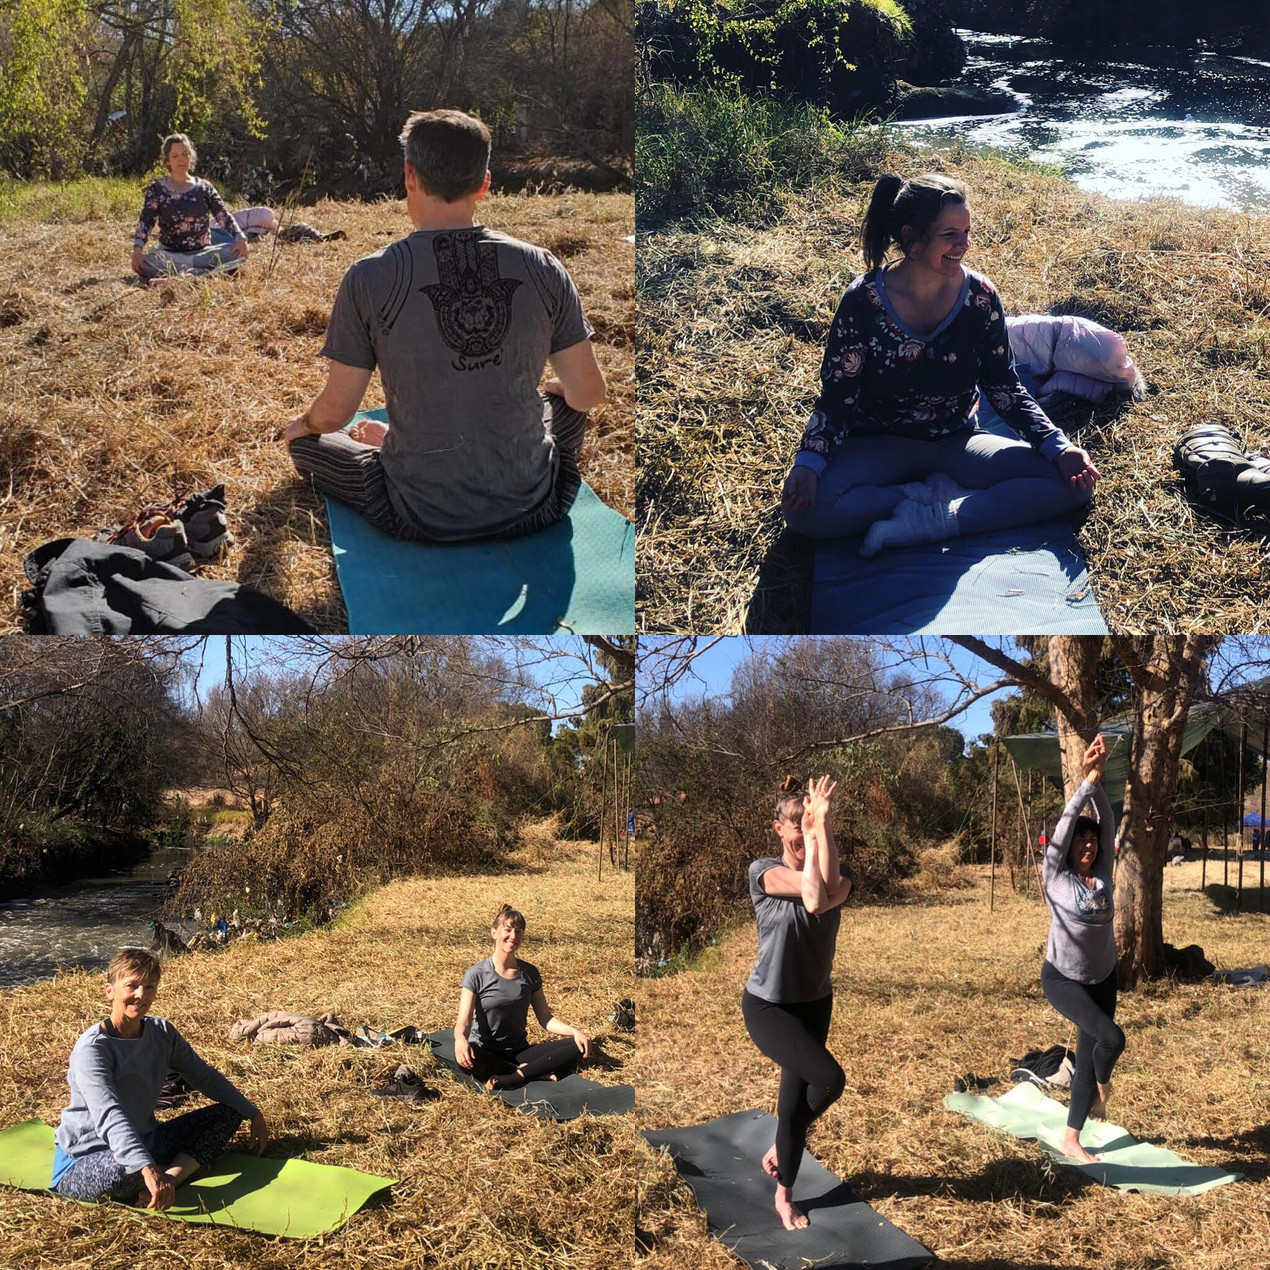 Katherine Fillmore of Hennops Blue Horizon presented an early morning Yoga session, leaving everyone invigorated and ready for the day